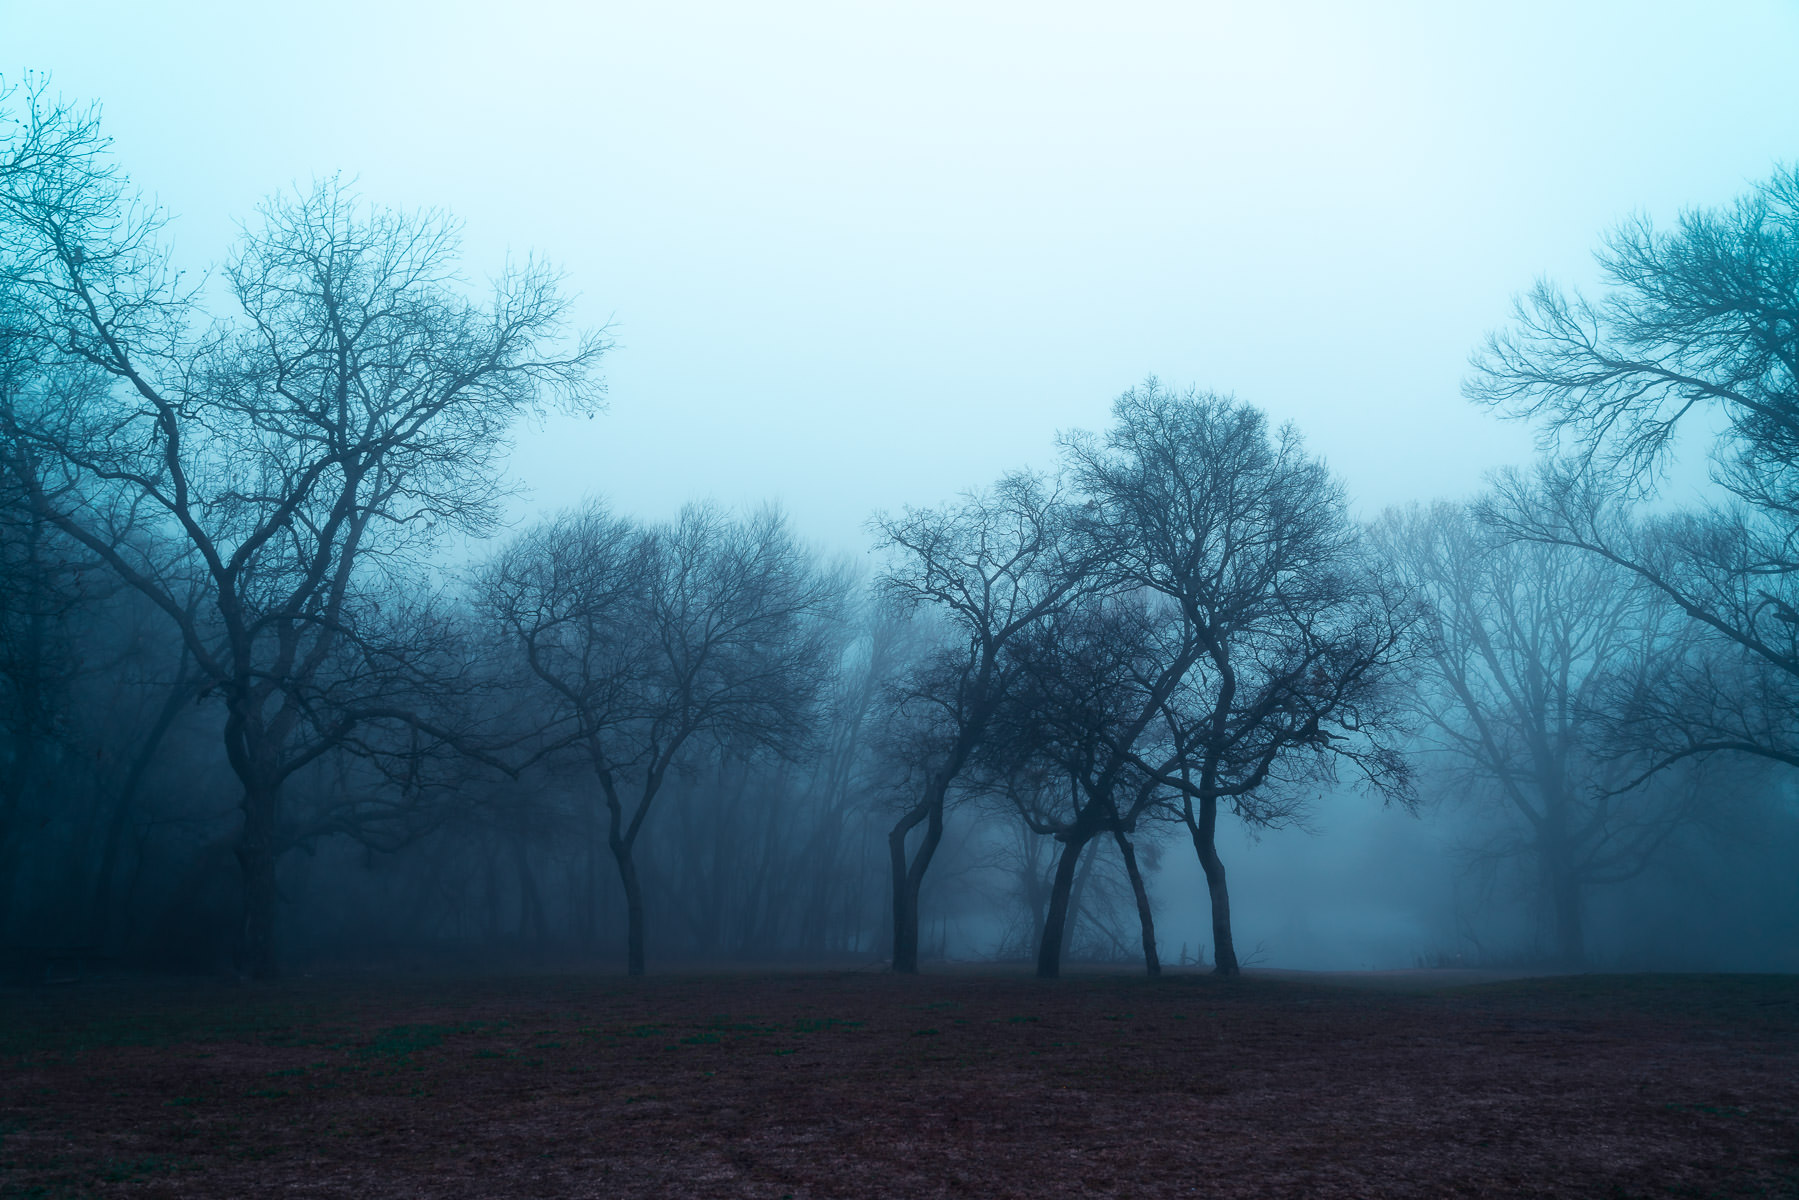 Morning fog envelops trees at McKinney, Texas' Erwin Park.